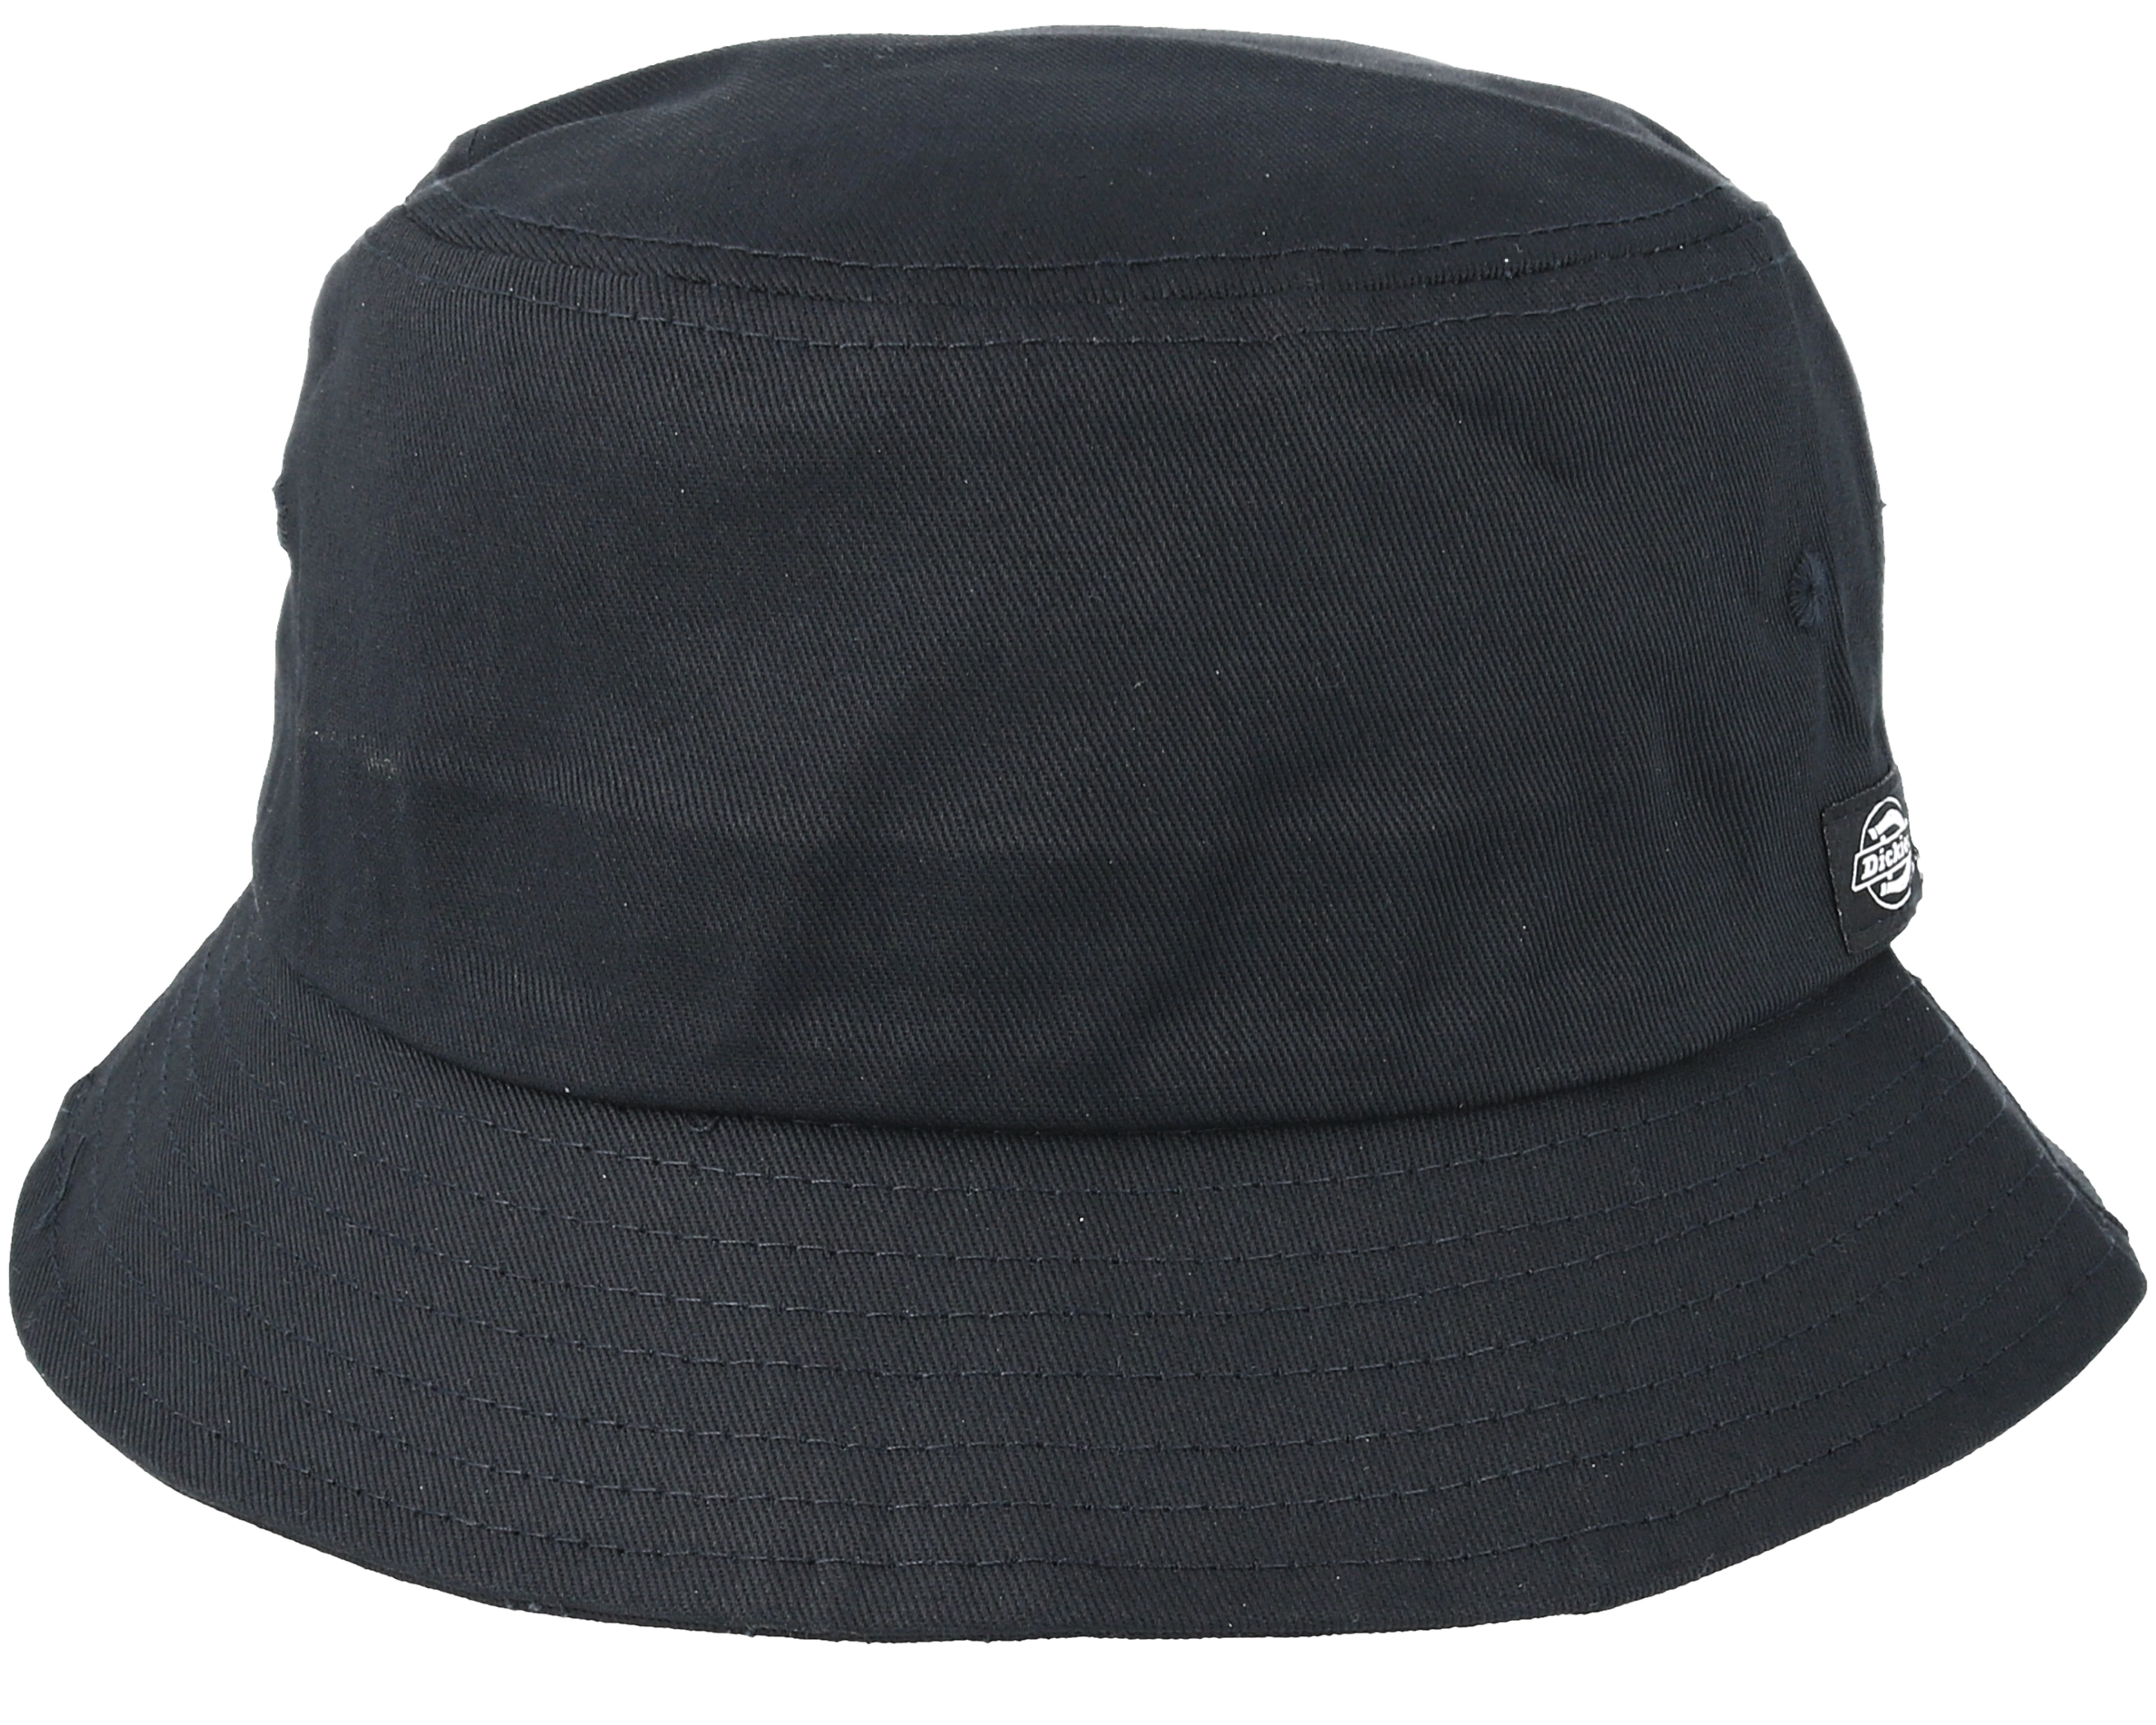 Addison Black Bucket - Dickies hats  27c627d35d2